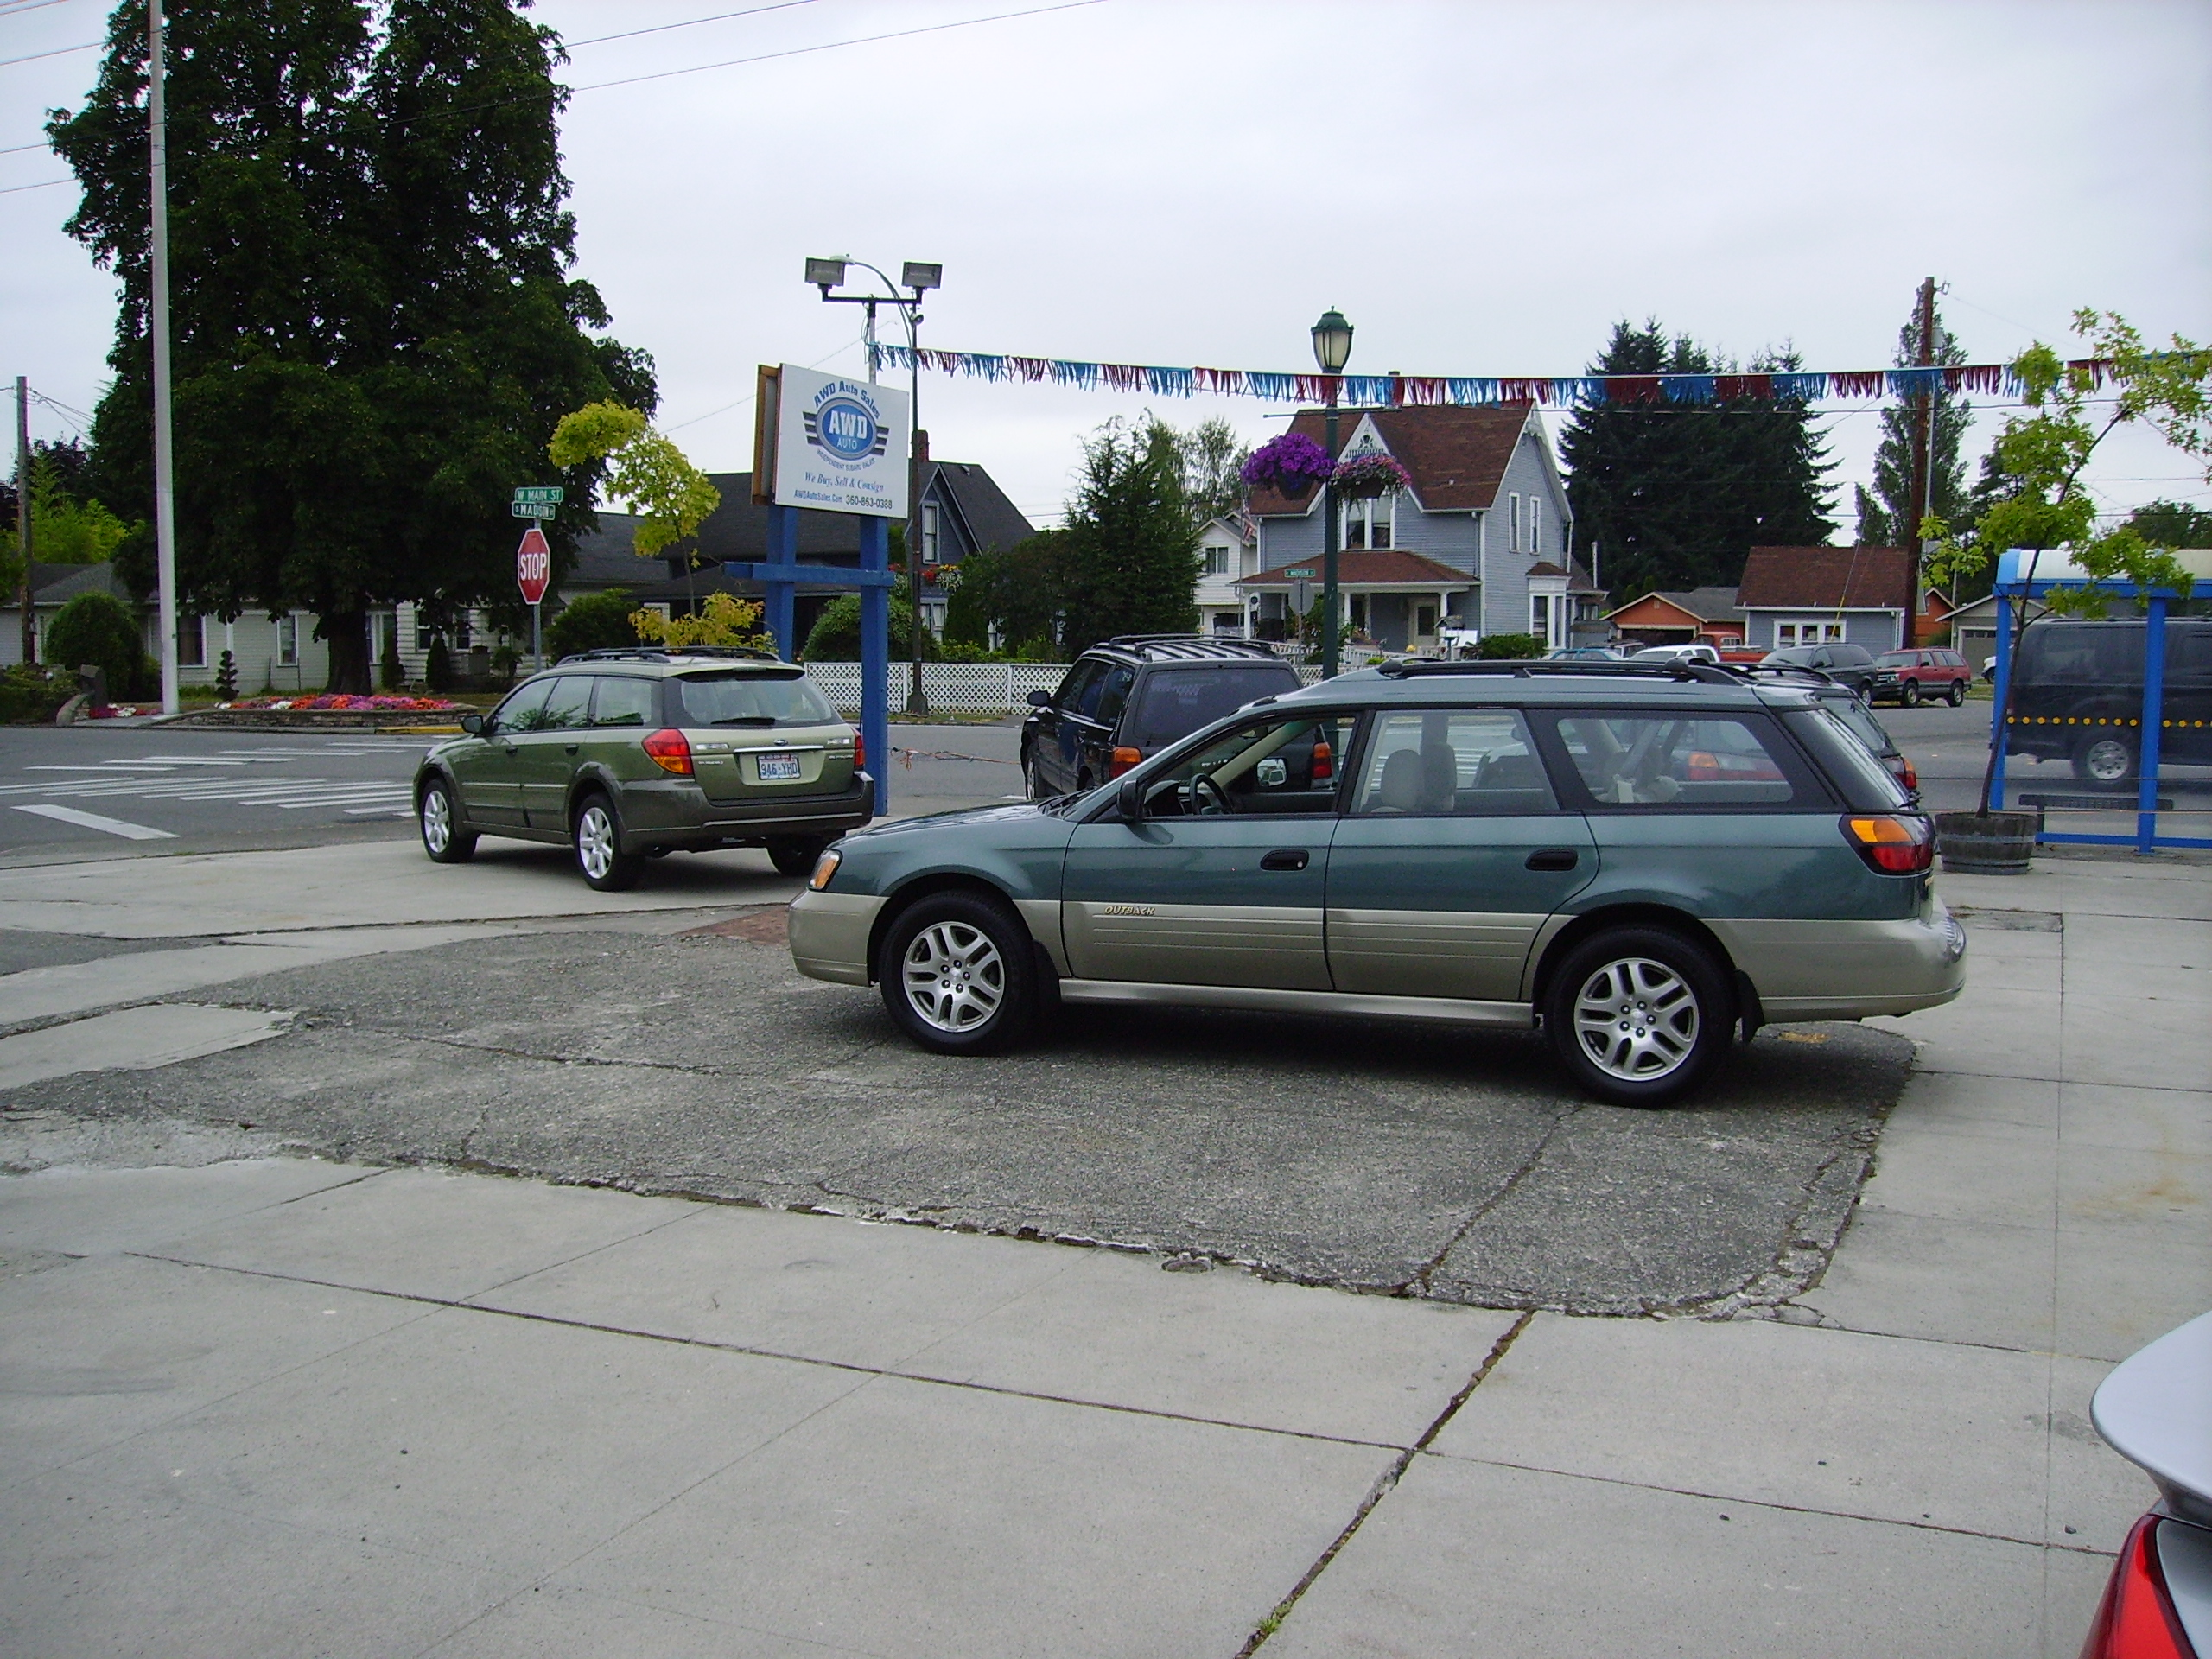 Awd Auto Sales Page 19 Independent Subaru 2000 Legacy Outback